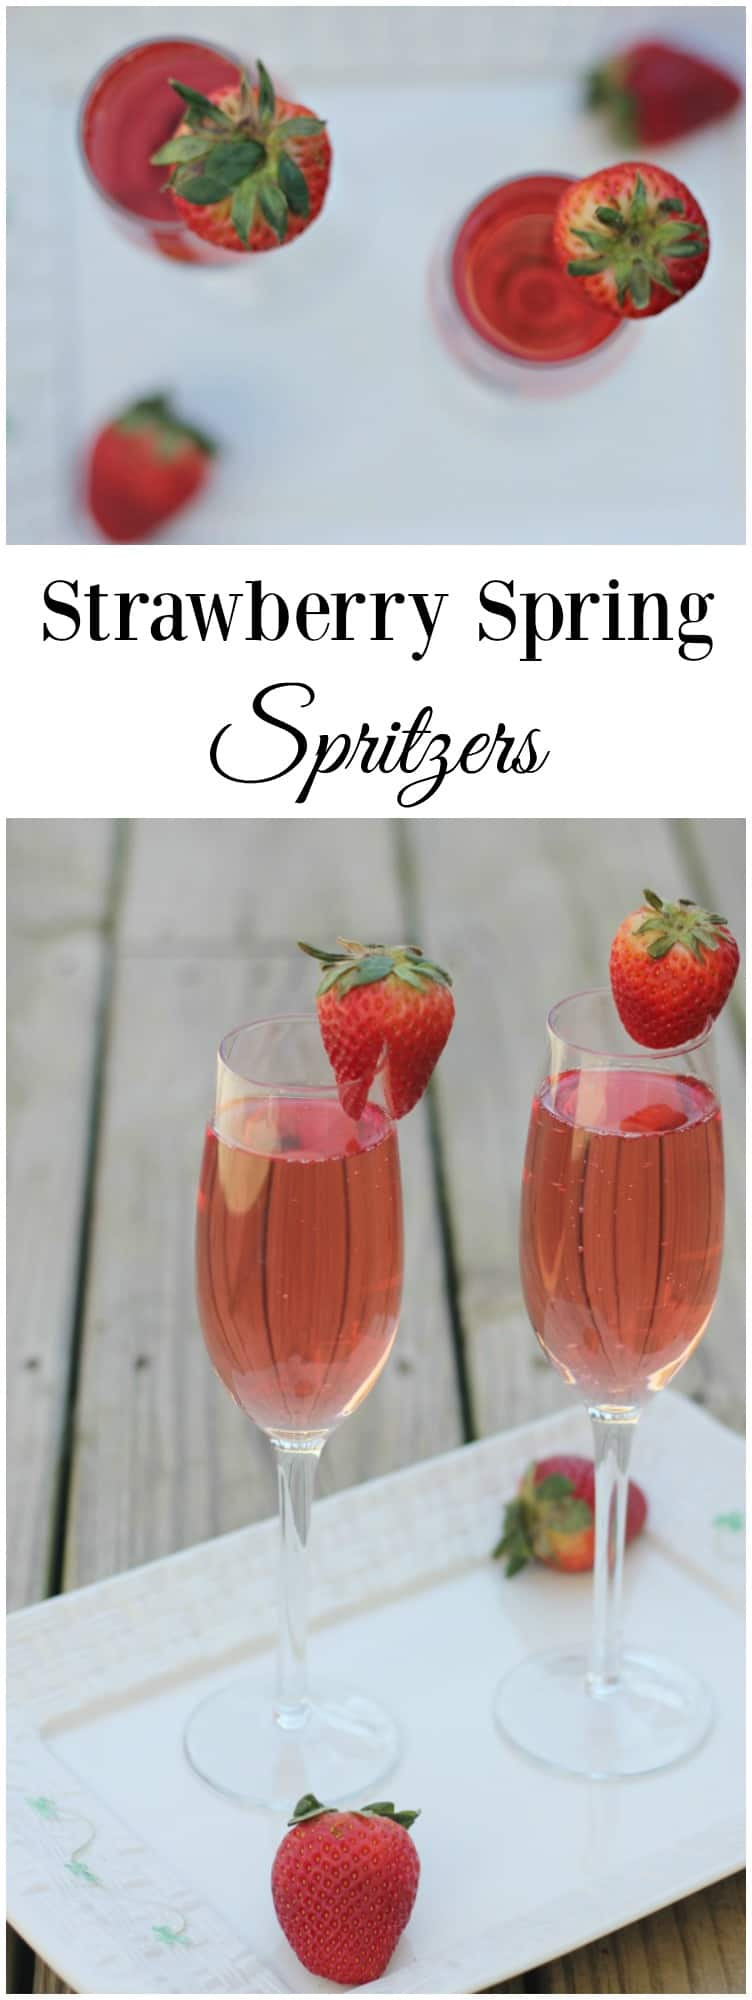 We're backyard spring cleaning and getting ready with some Strawberry Spring Spritzers drawtheline AD